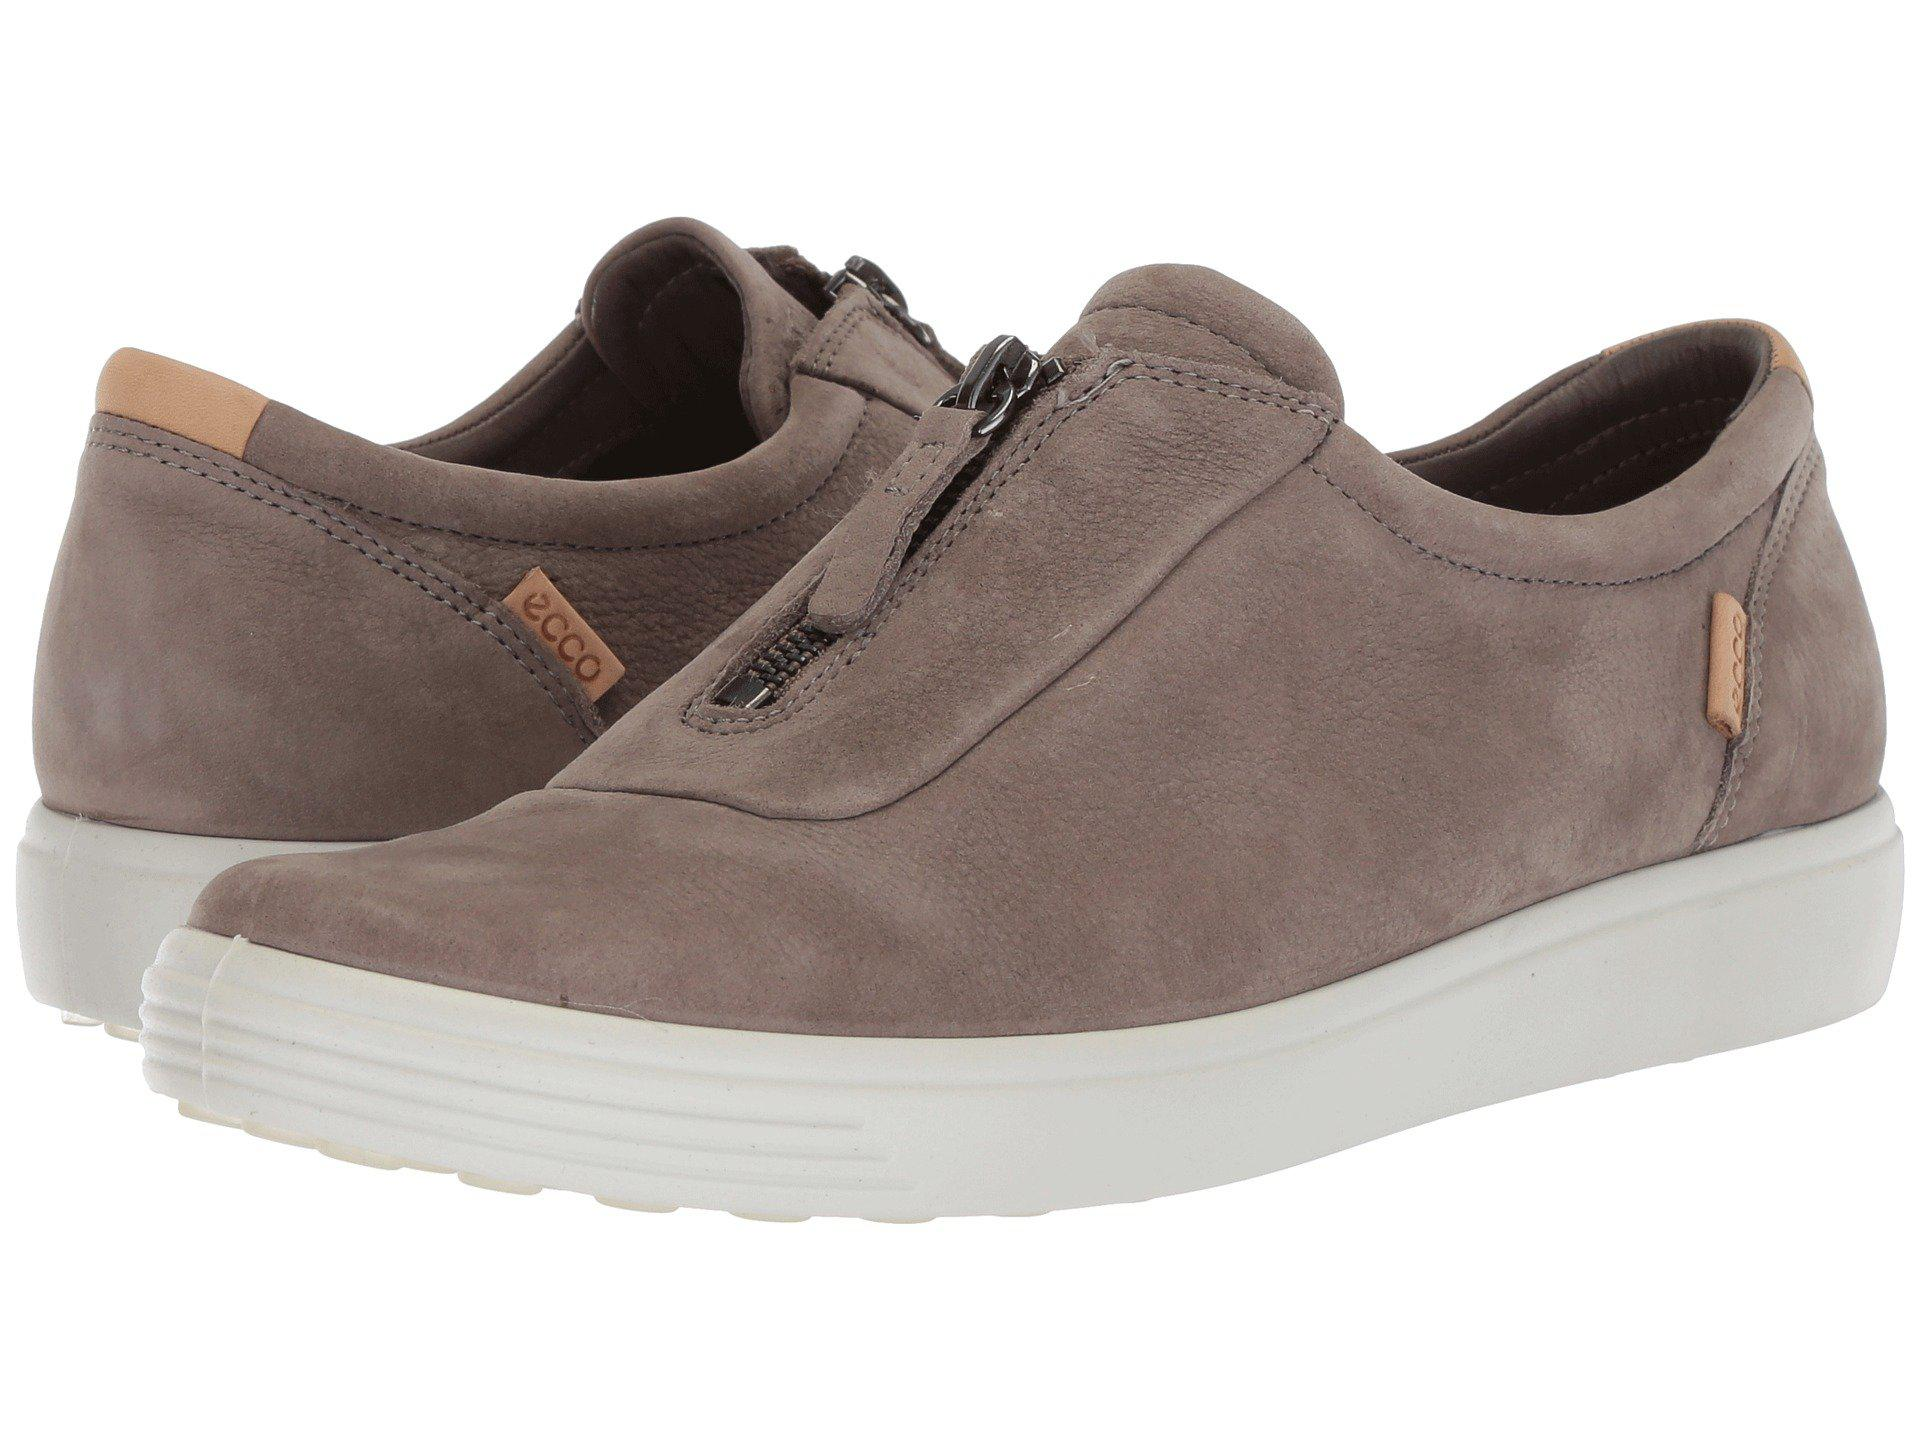 2175e83d862 Ecco - Gray Soft 7 Zip (black Cow Nubuck) Women s Shoes - Lyst. View  fullscreen